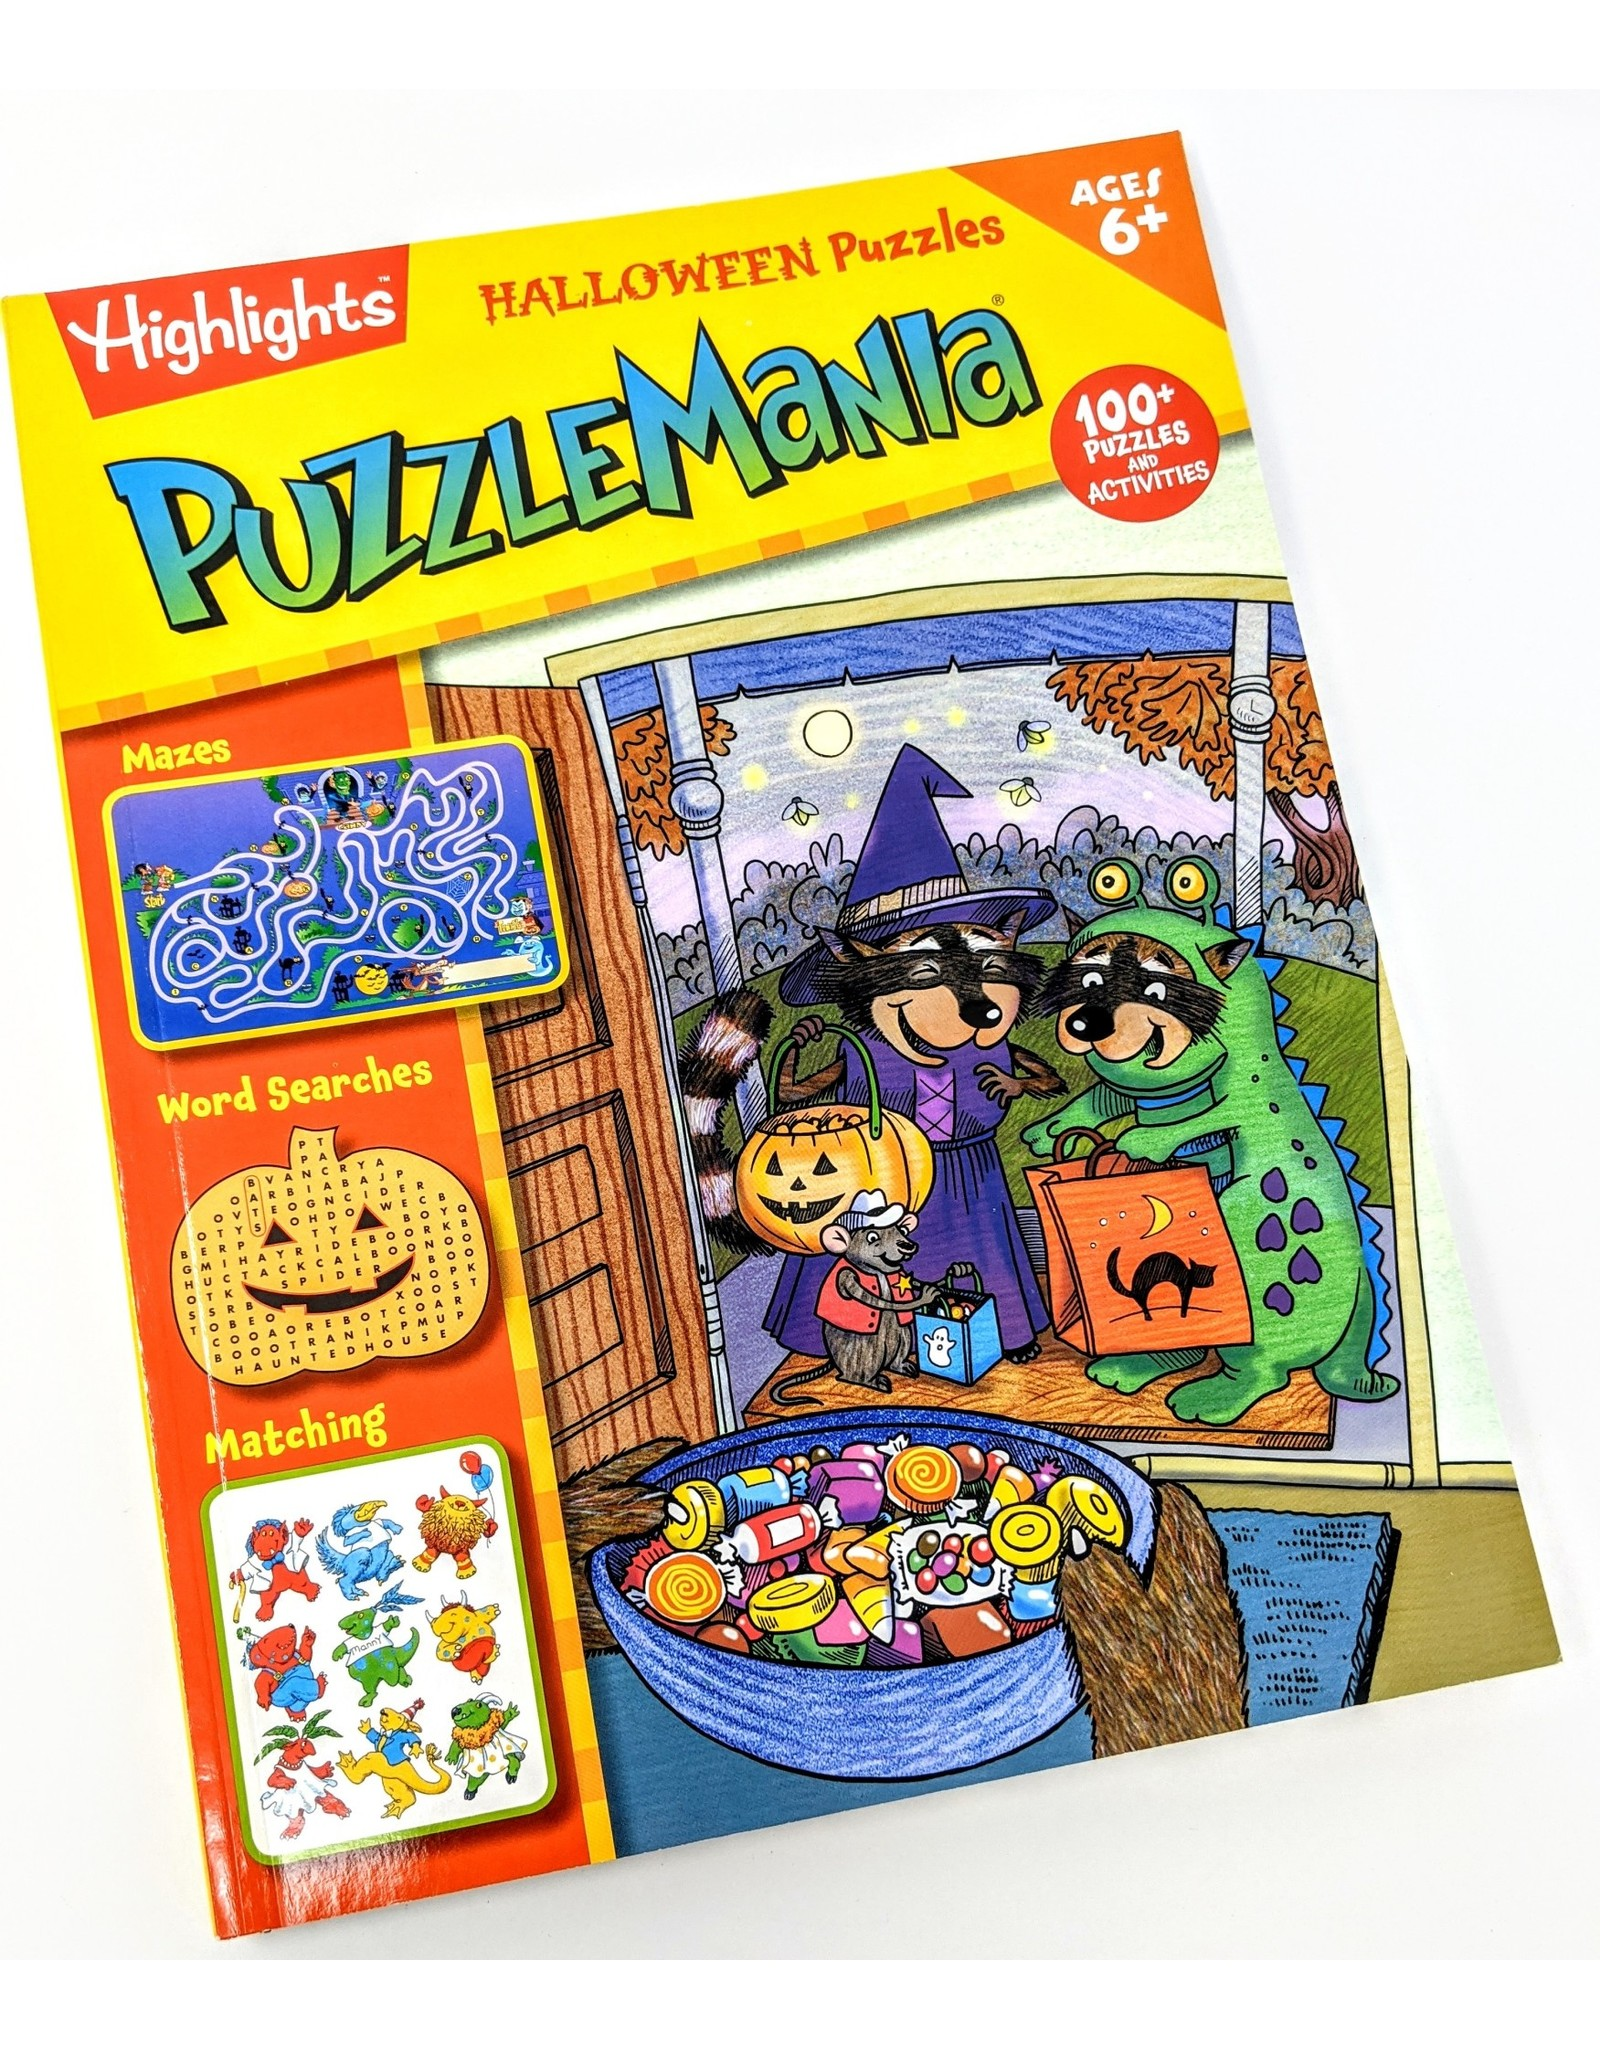 Highlights Halloween Puzzles